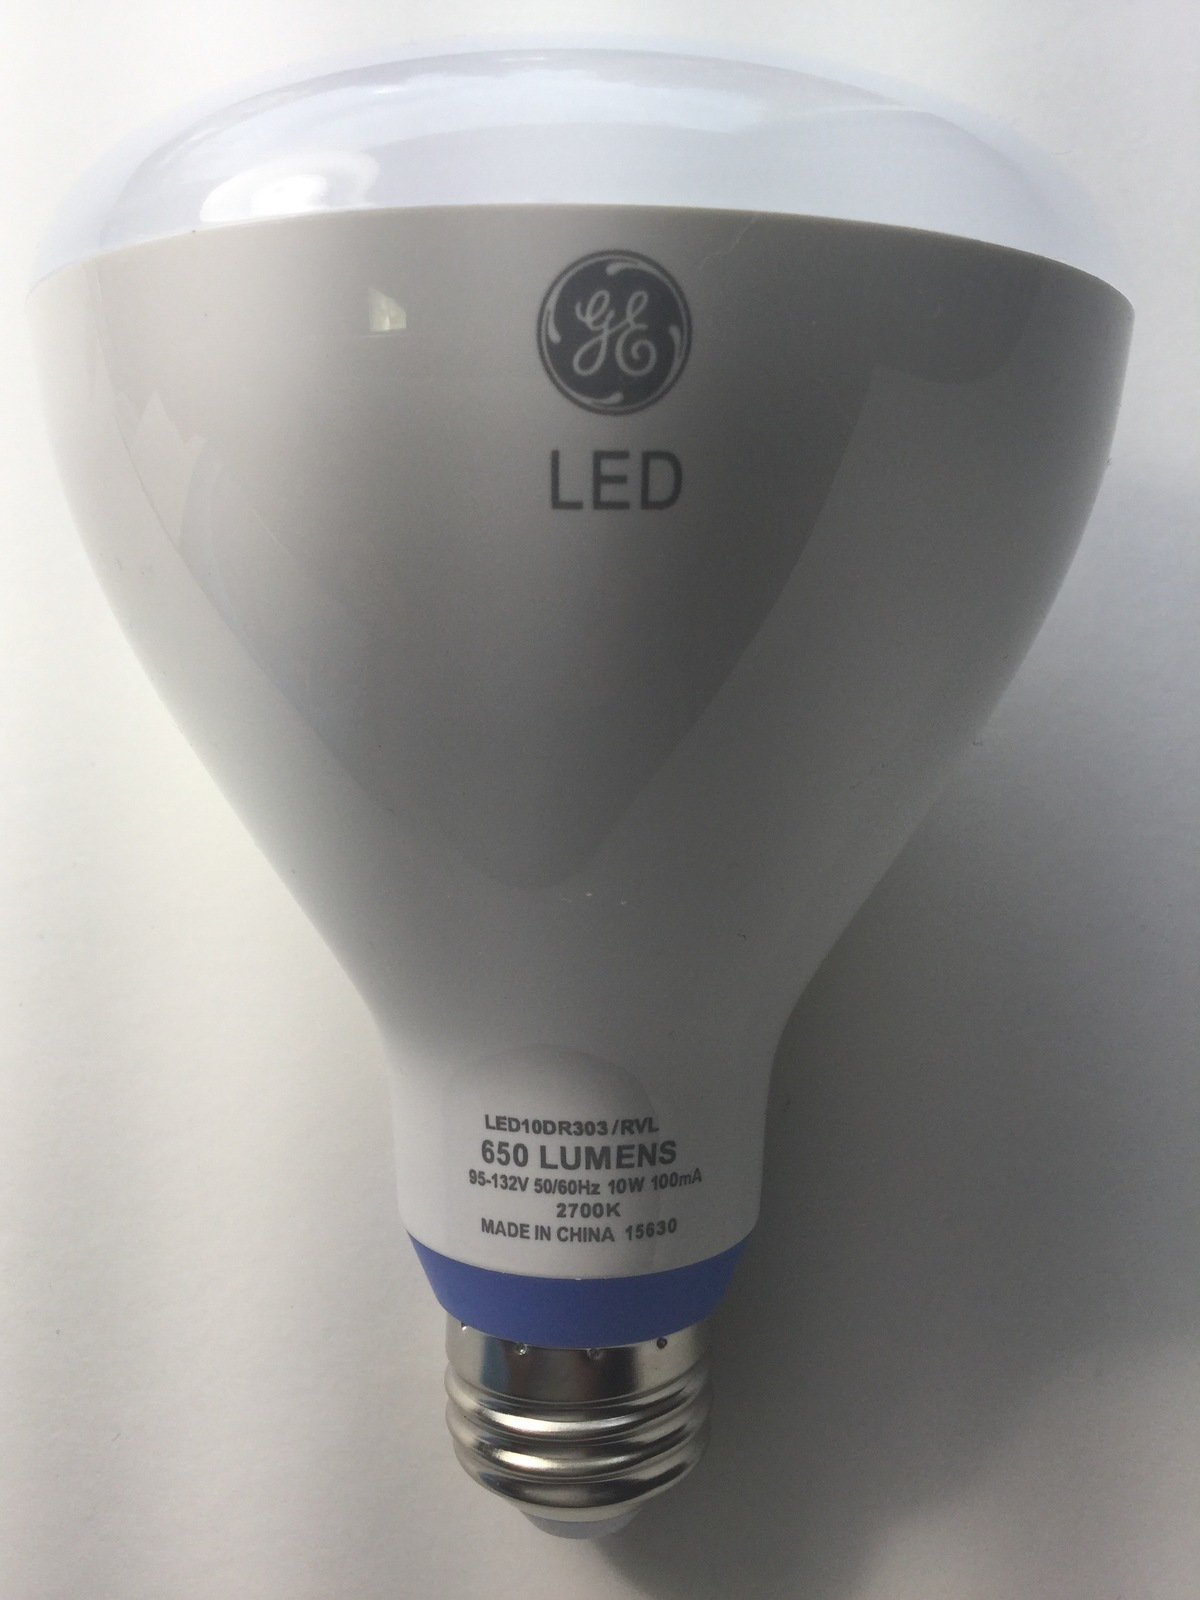 Led Daylight Bulb: 4 Bulbs GE Reveal LED Daylight 65W Equivalent Dimmable